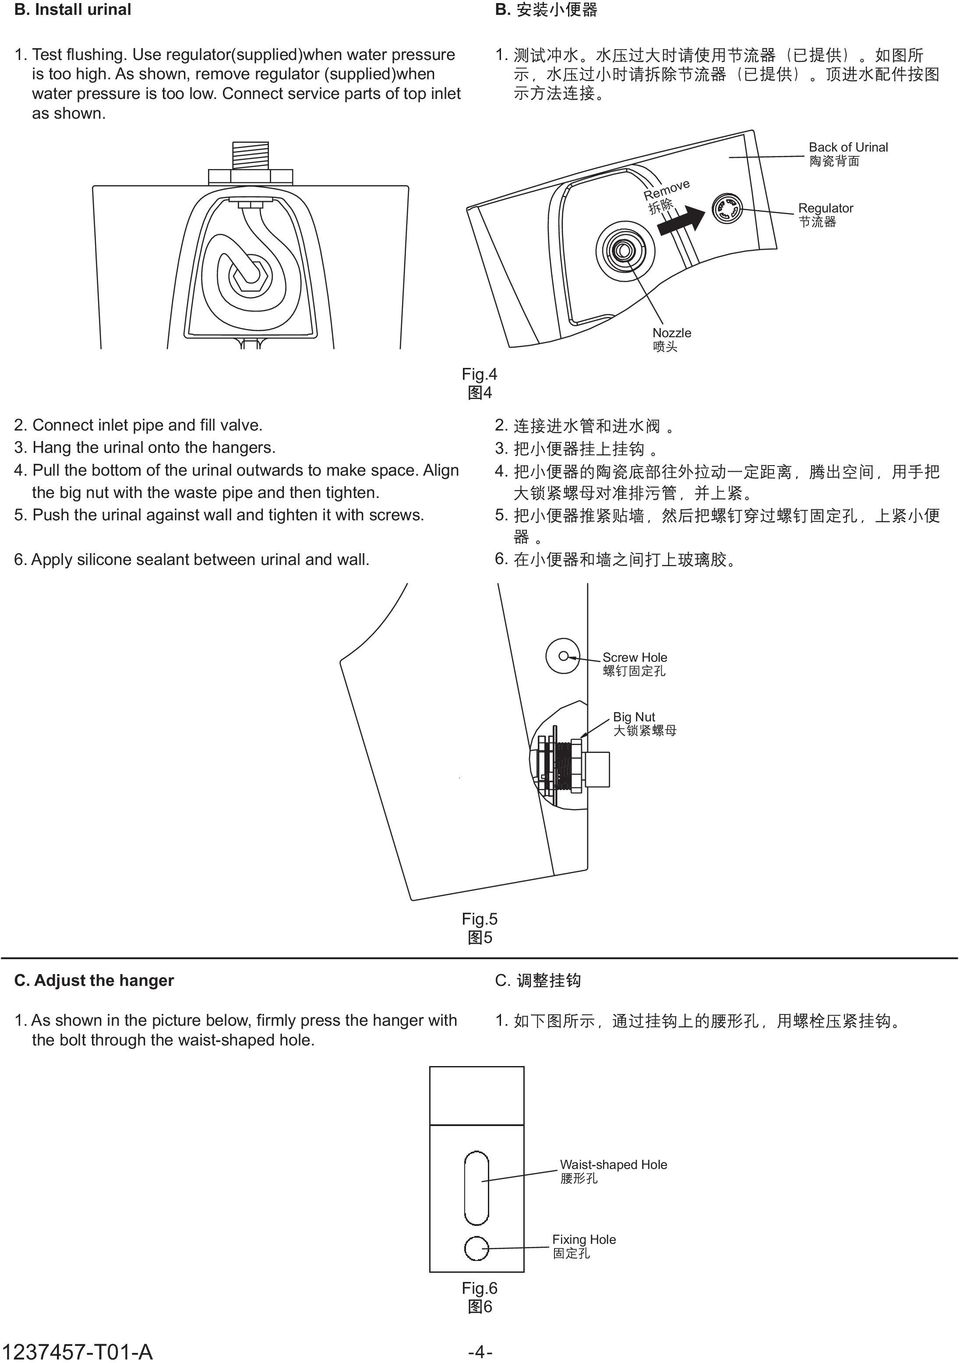 Struktura T01 A Installation Instructions Top Inlet And Rear American Standard Urinal Wiring Diagram Align The Big Nut With Waste Pipe Then Tighten 5 Push